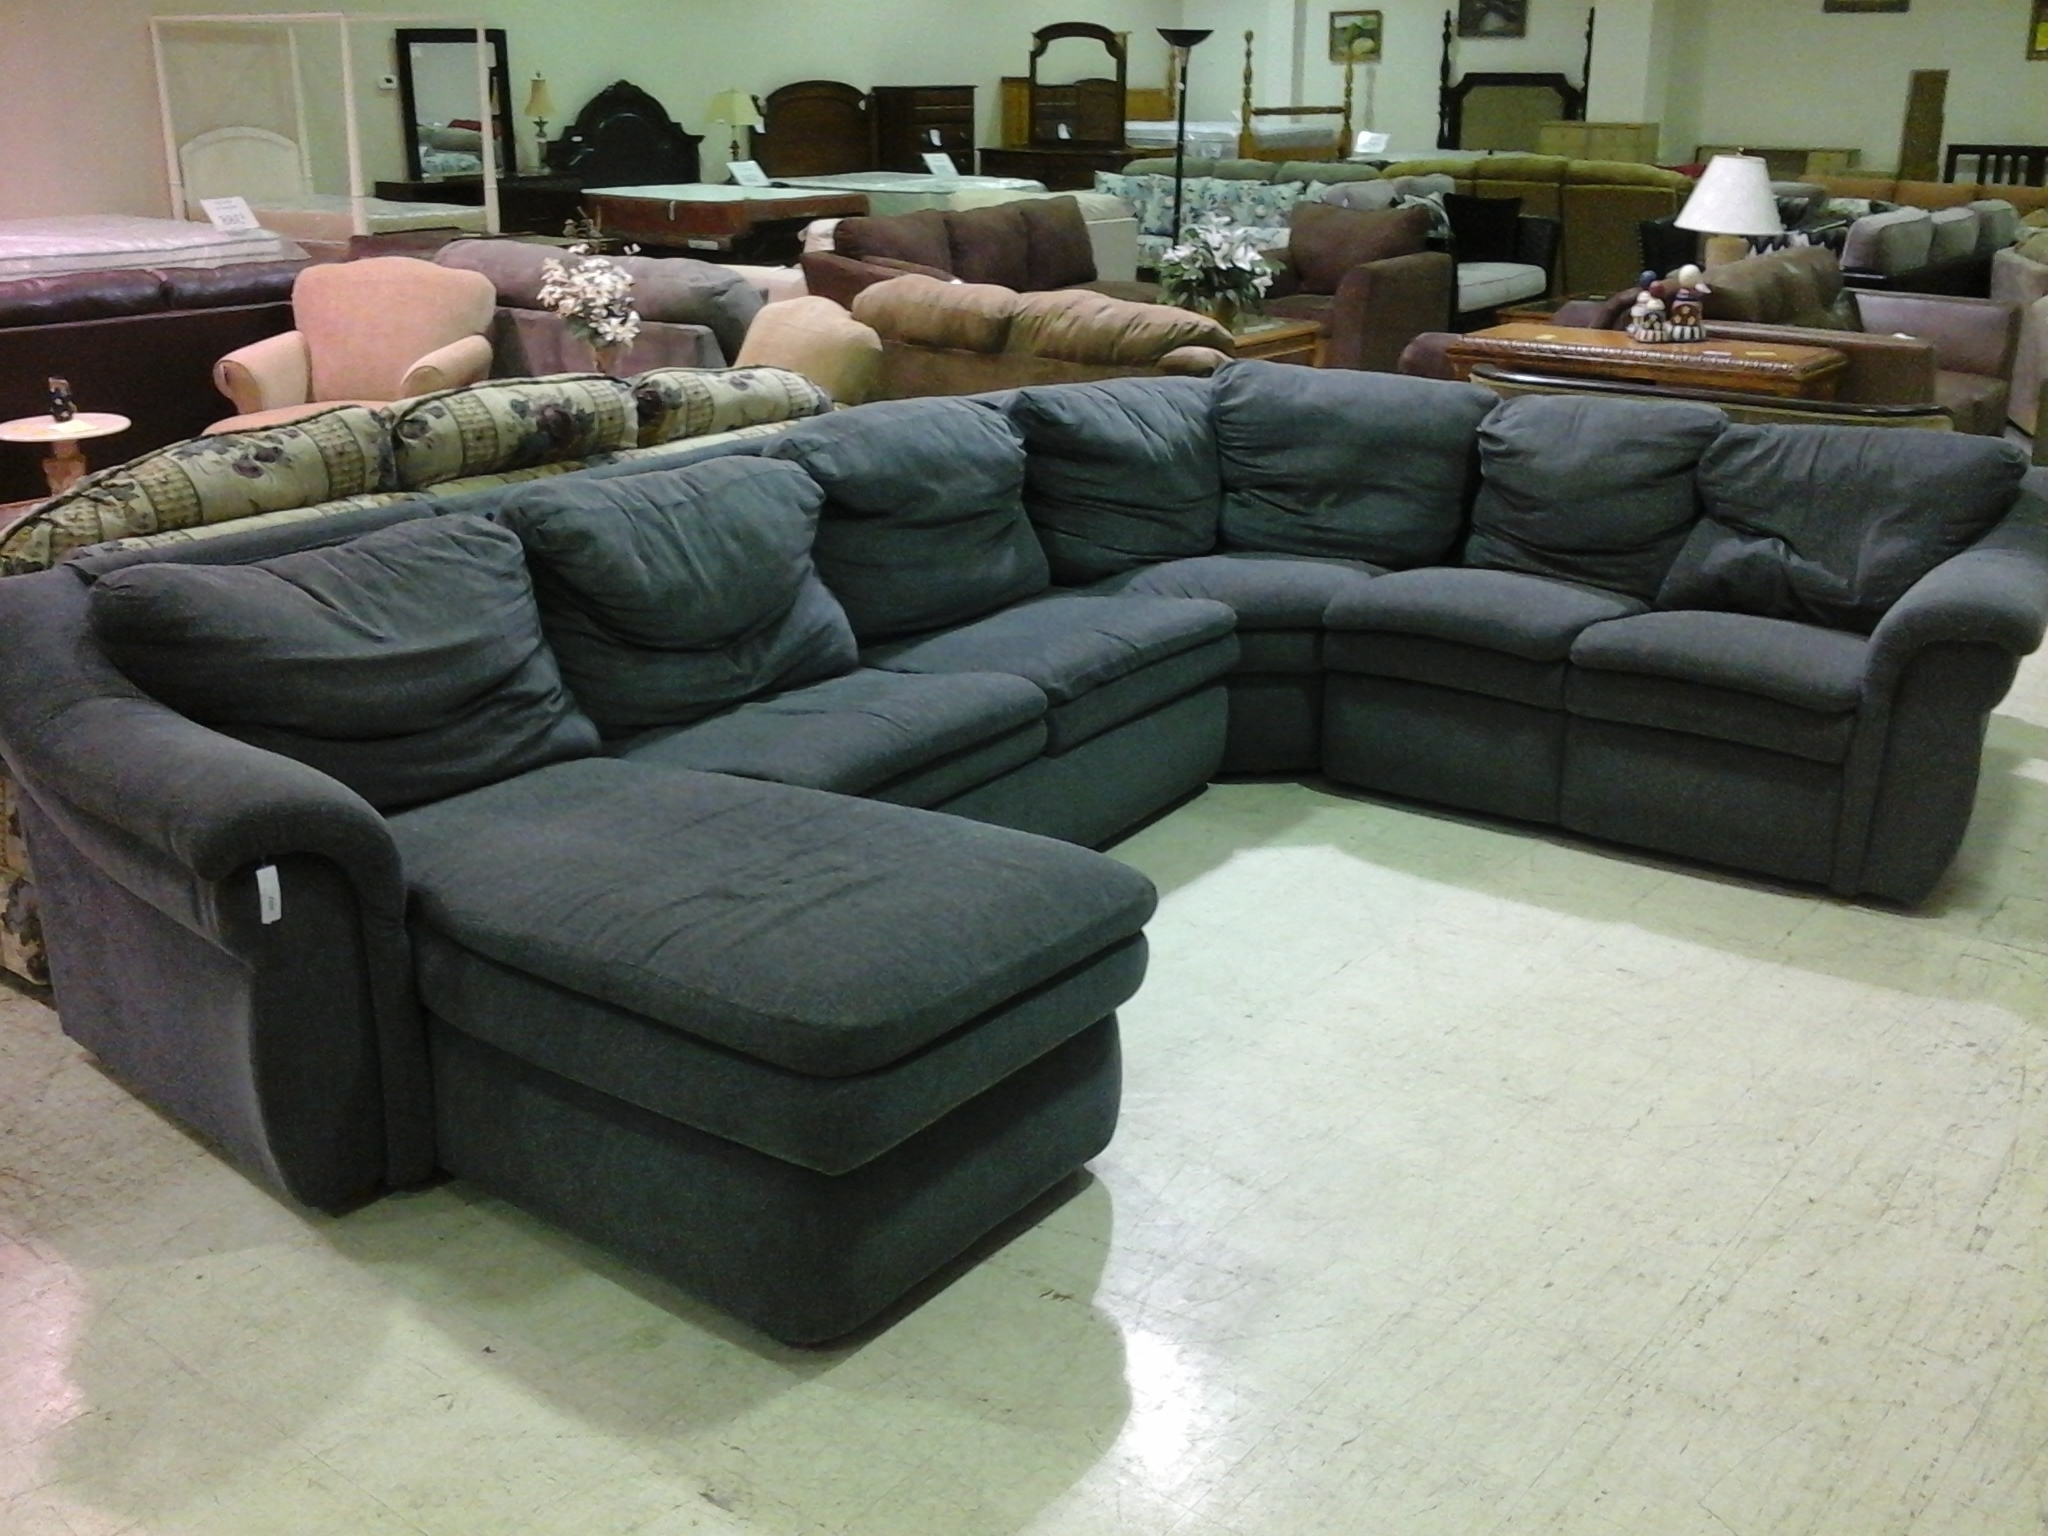 Pinterest In Latest Ventura County Sectional Sofas (View 9 of 20)